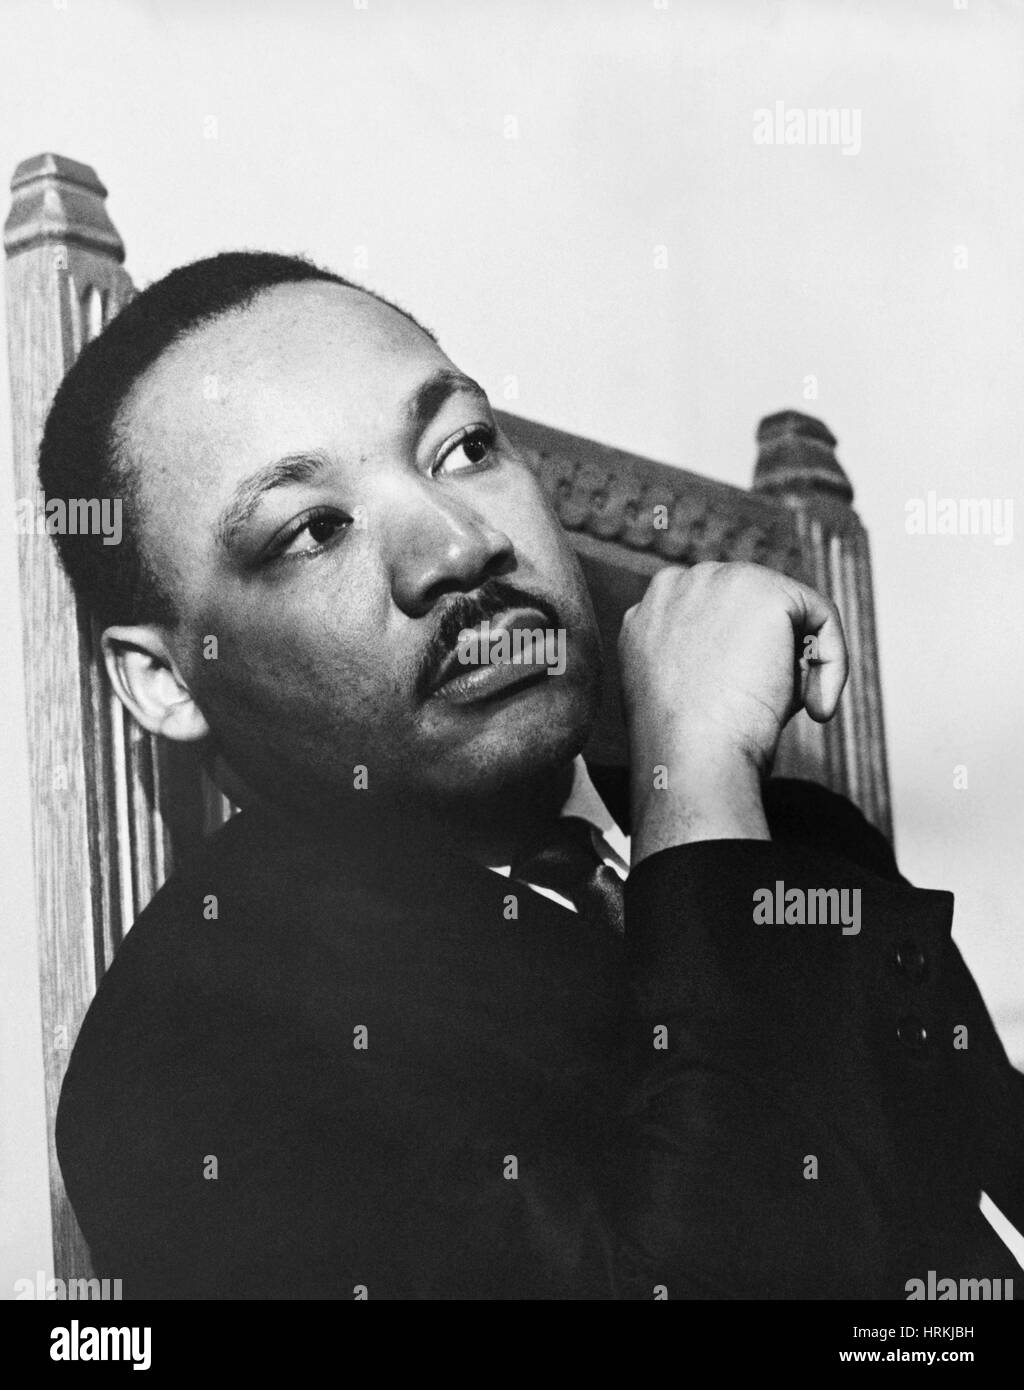 Martin Luther King, Jr., Civil Rights Leader Stock Photo